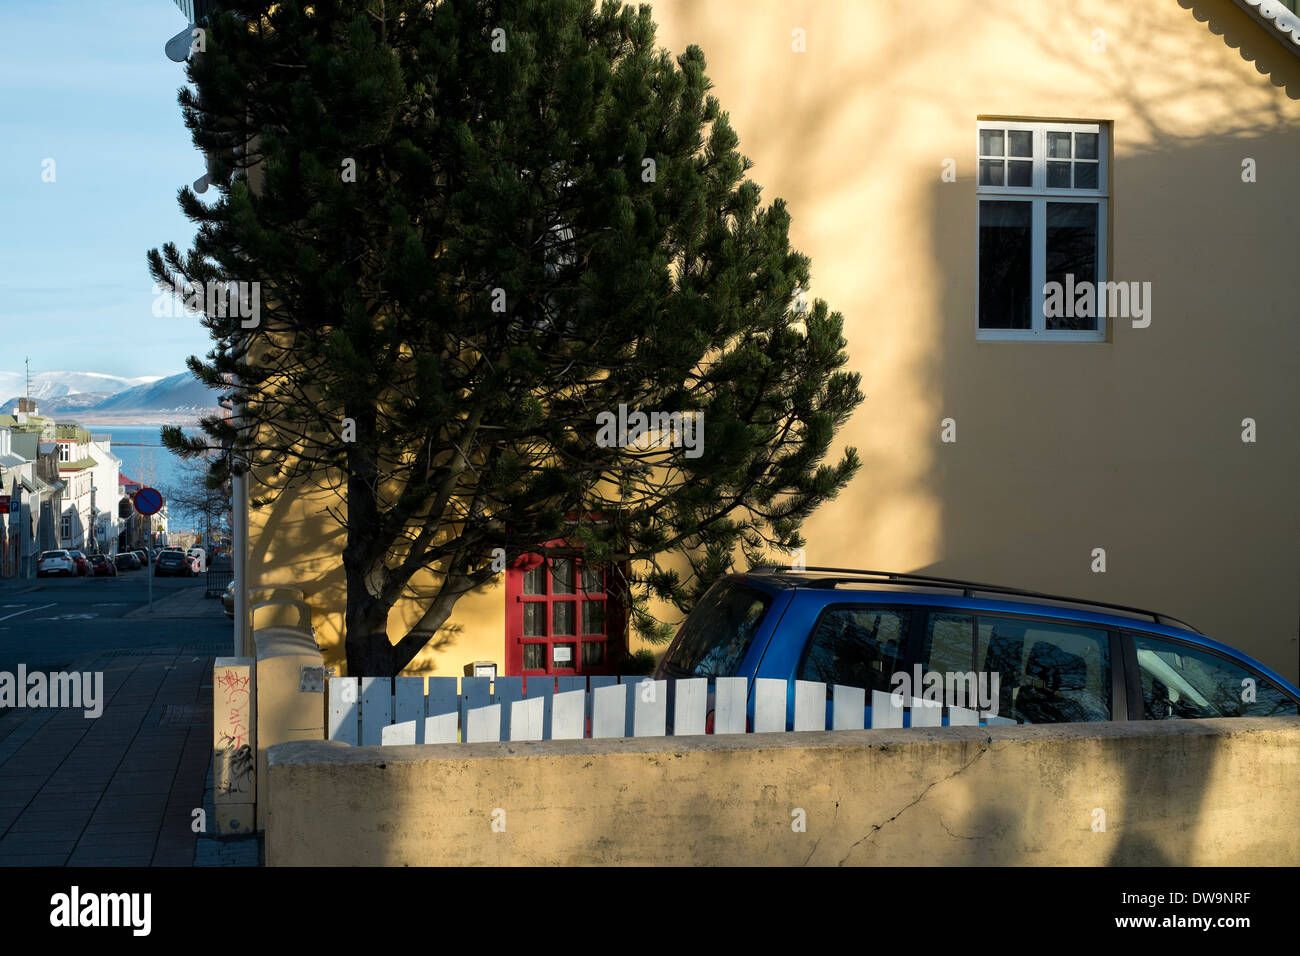 Car parked behind garden fence with tree. Revkjavik, Iceland - Stock Image